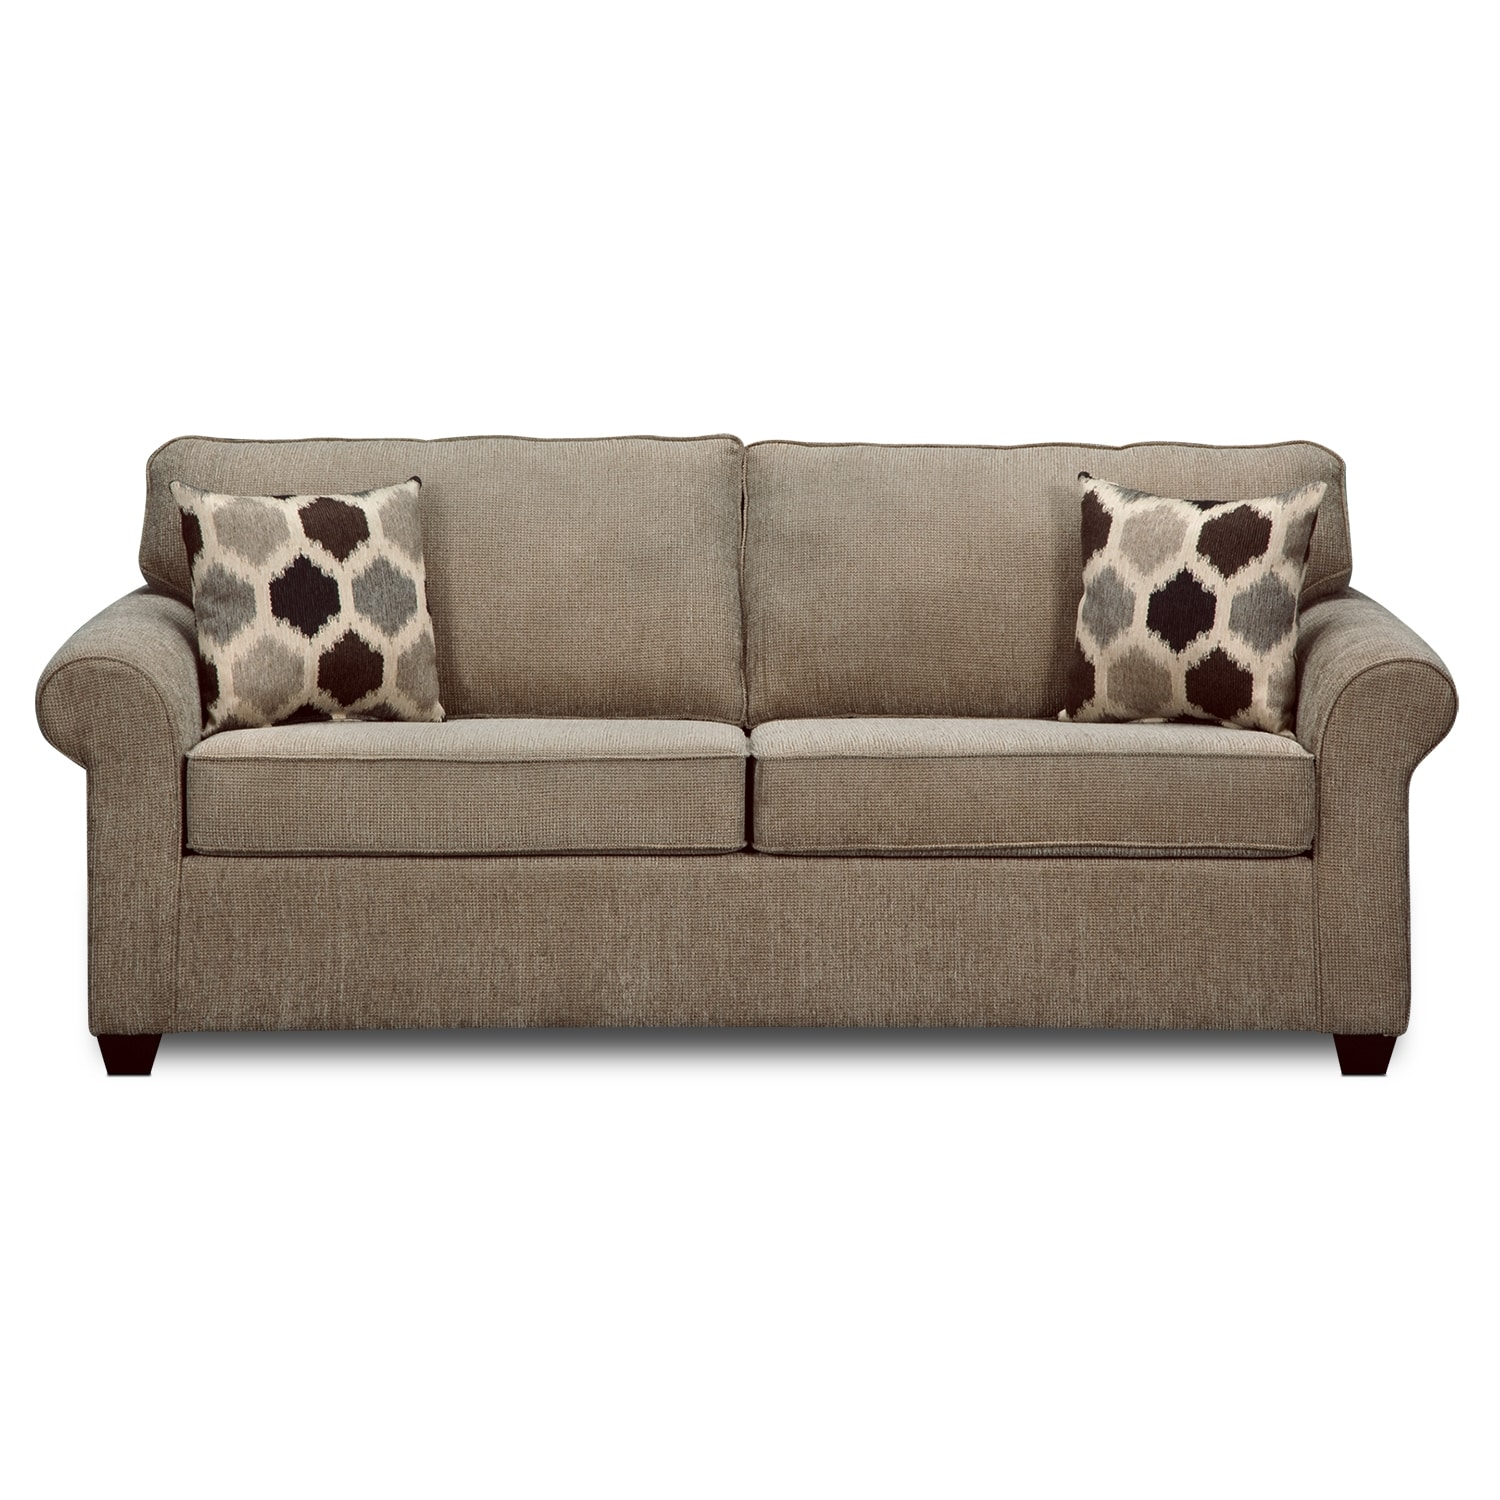 Value city furniture Sofa sleeper loveseat